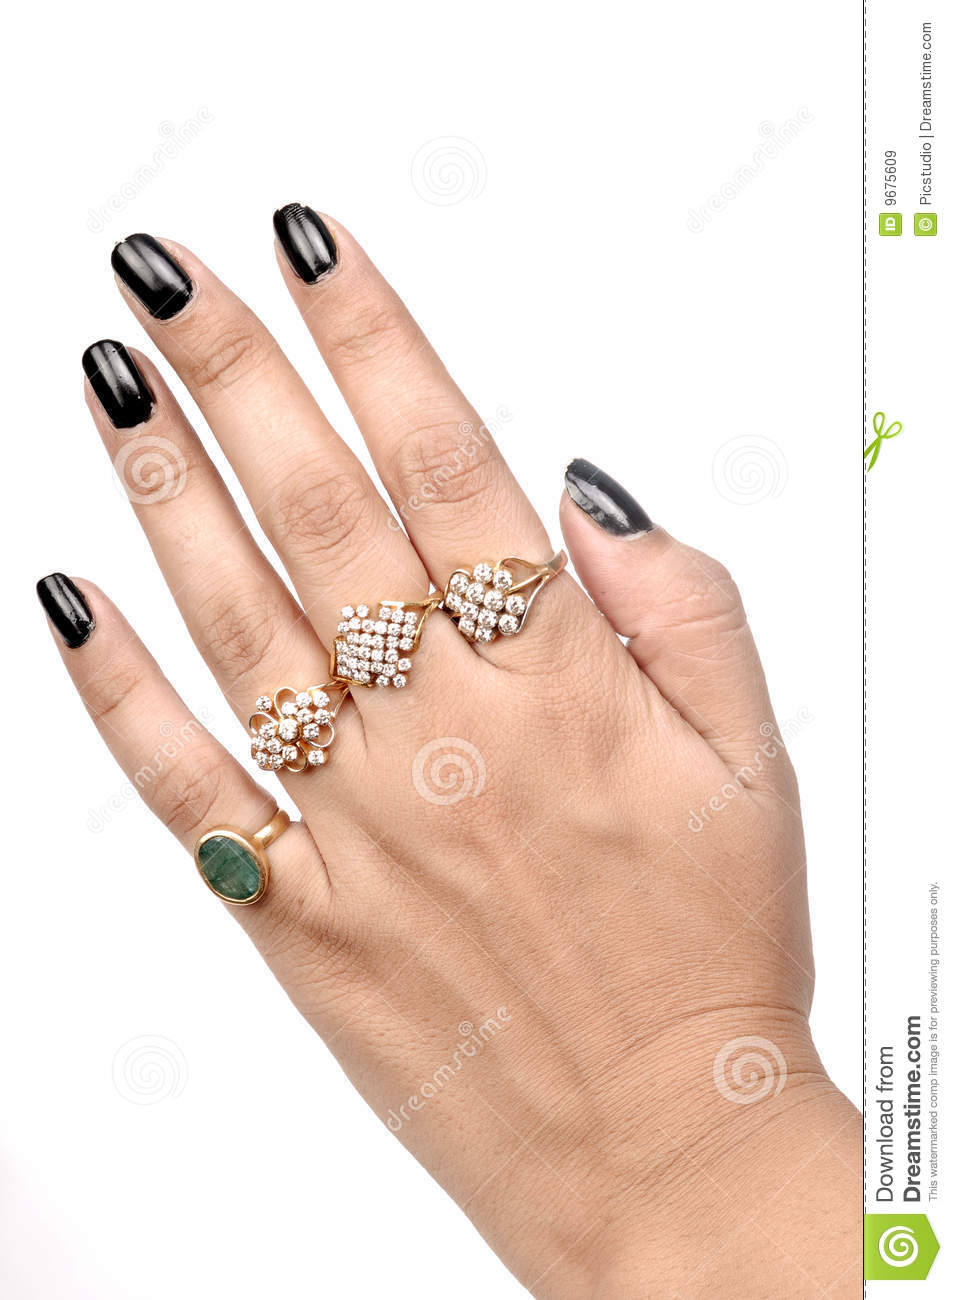 Diamond gold rings on fingers